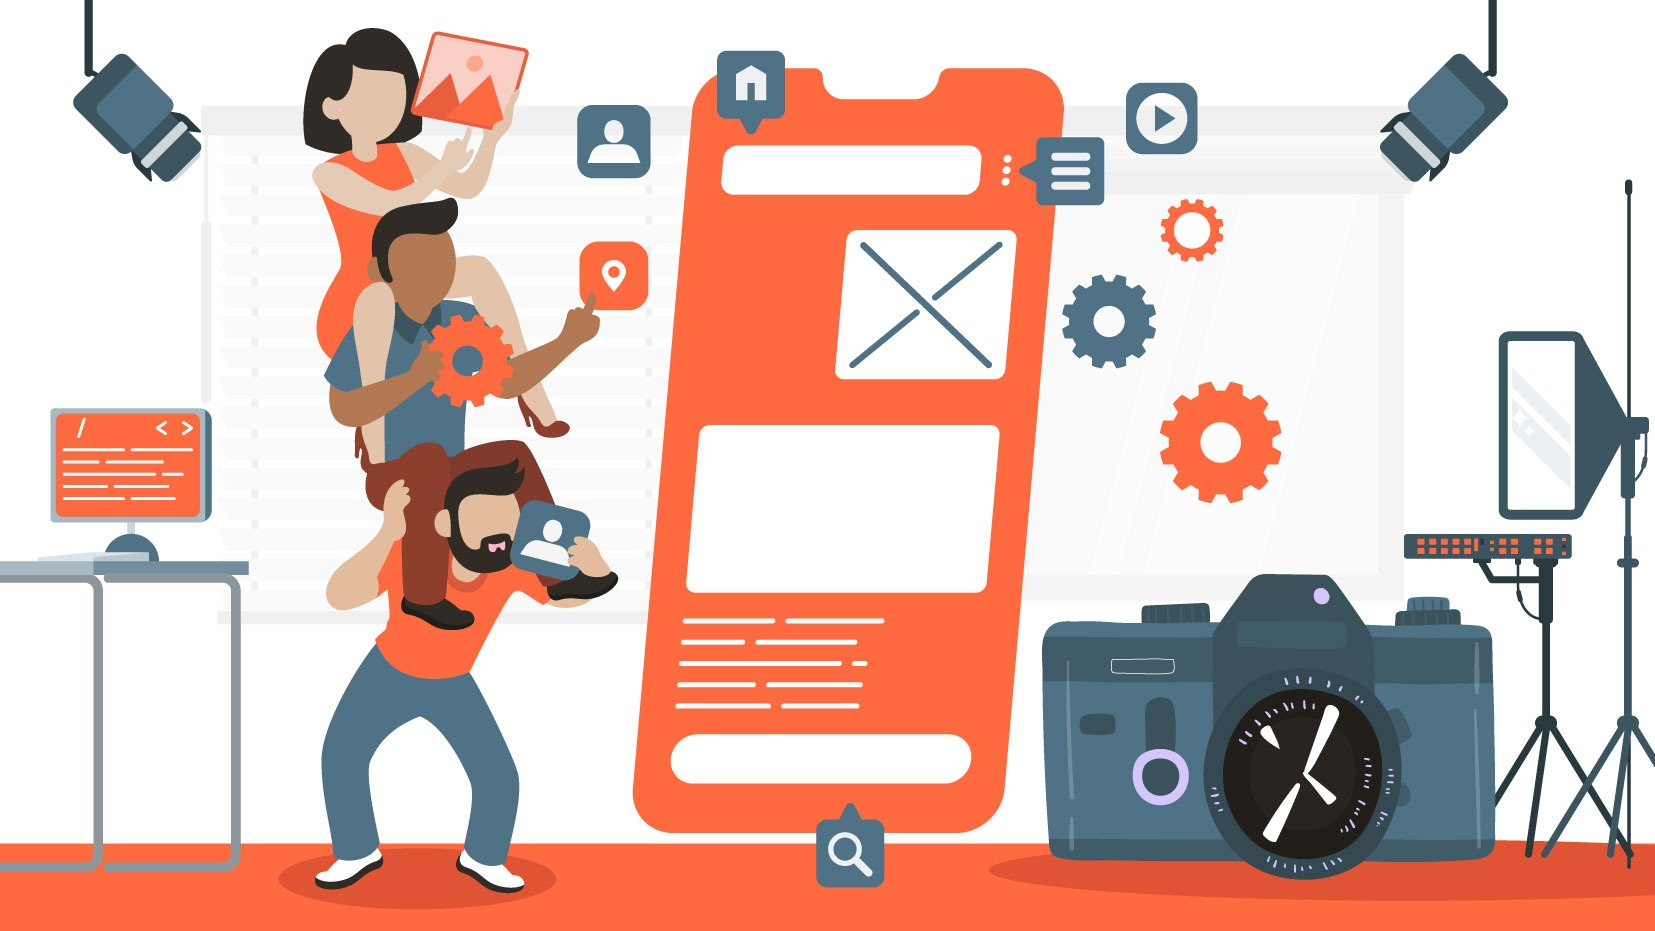 Moving Fast with Mobile: How Leica Uses Contentful to Transform Mobile Performance